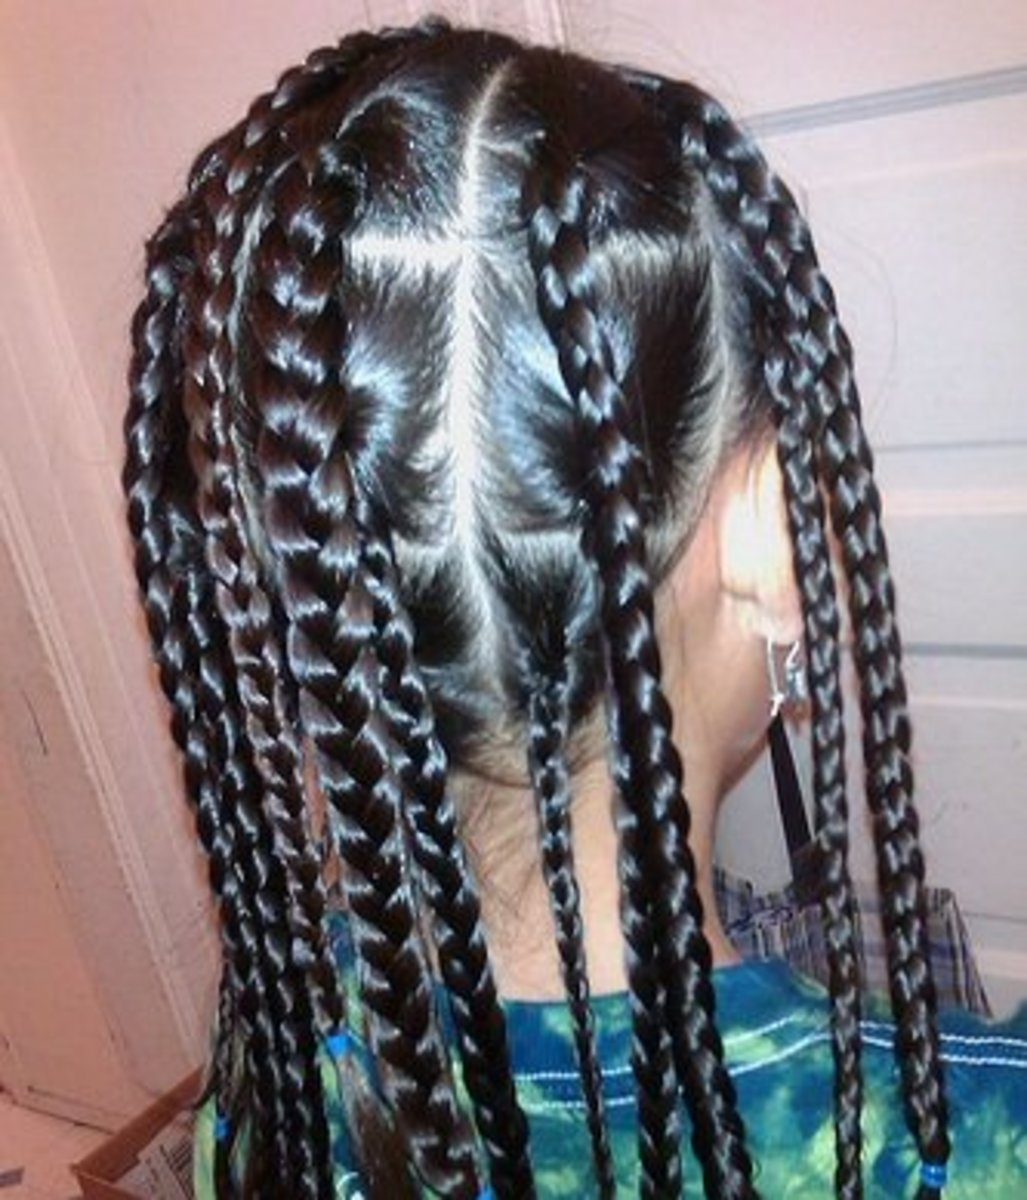 Leaving braids in overnight isa great way to get curls without much effort.